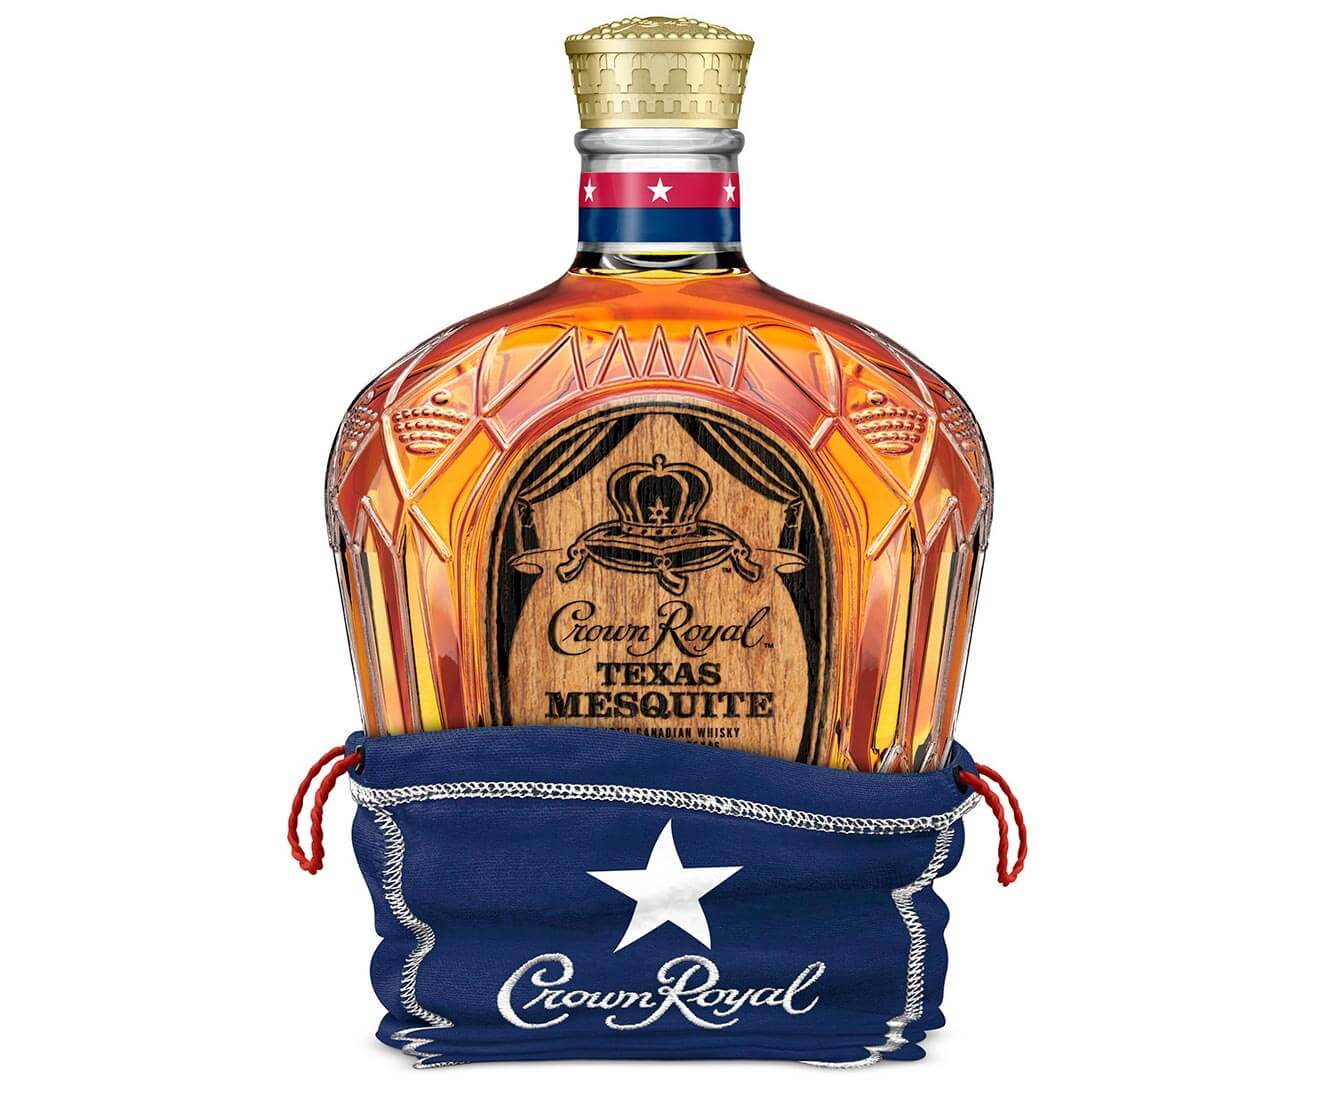 Crown Royal Limited Edition Texas Mesquite, bottle on white